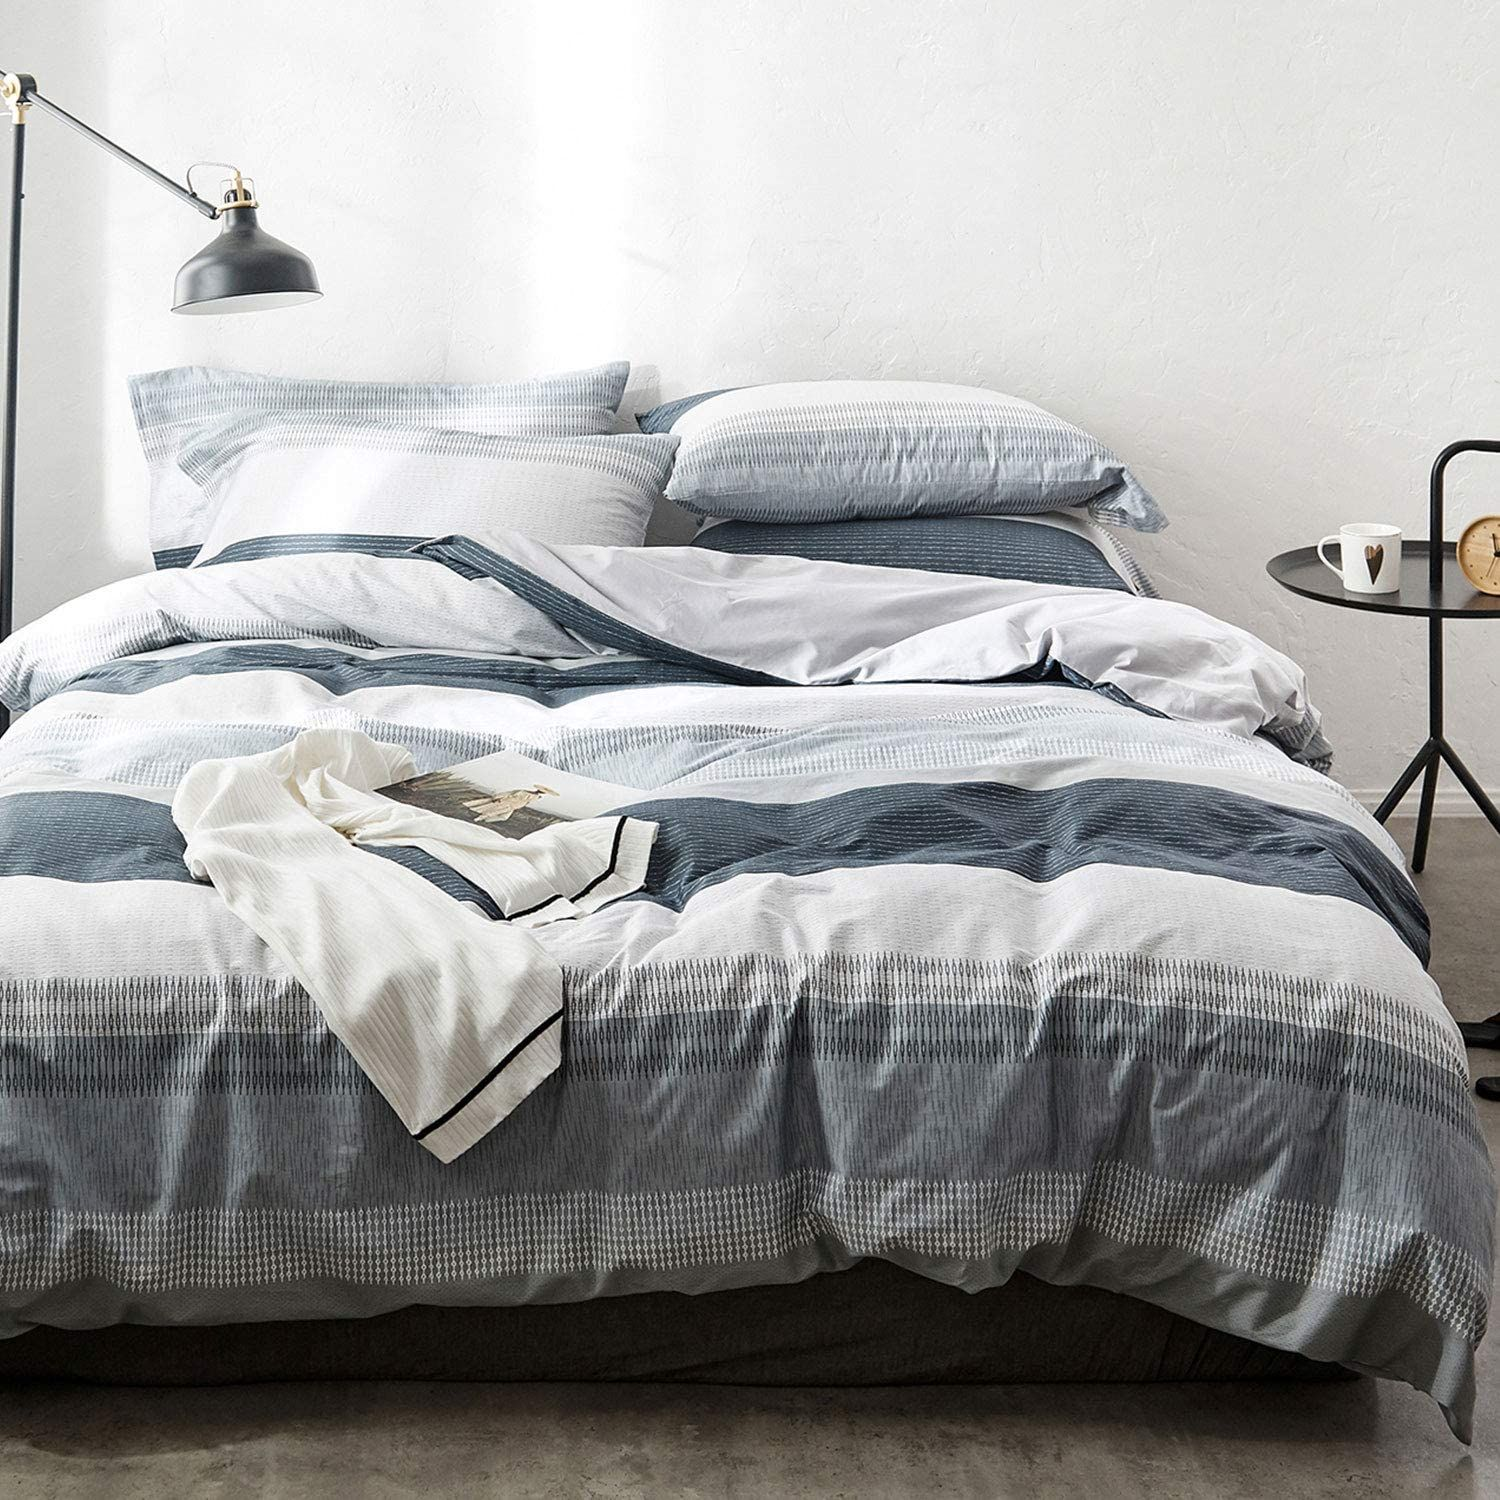 Oreise Duvet Cover Set Full Queen Size 100 Cotton Bedding Set Gray Blue White Printed Striped S In 2020 Duvet Cover Sets Bedding Sets Grey Cotton Bedding Sets